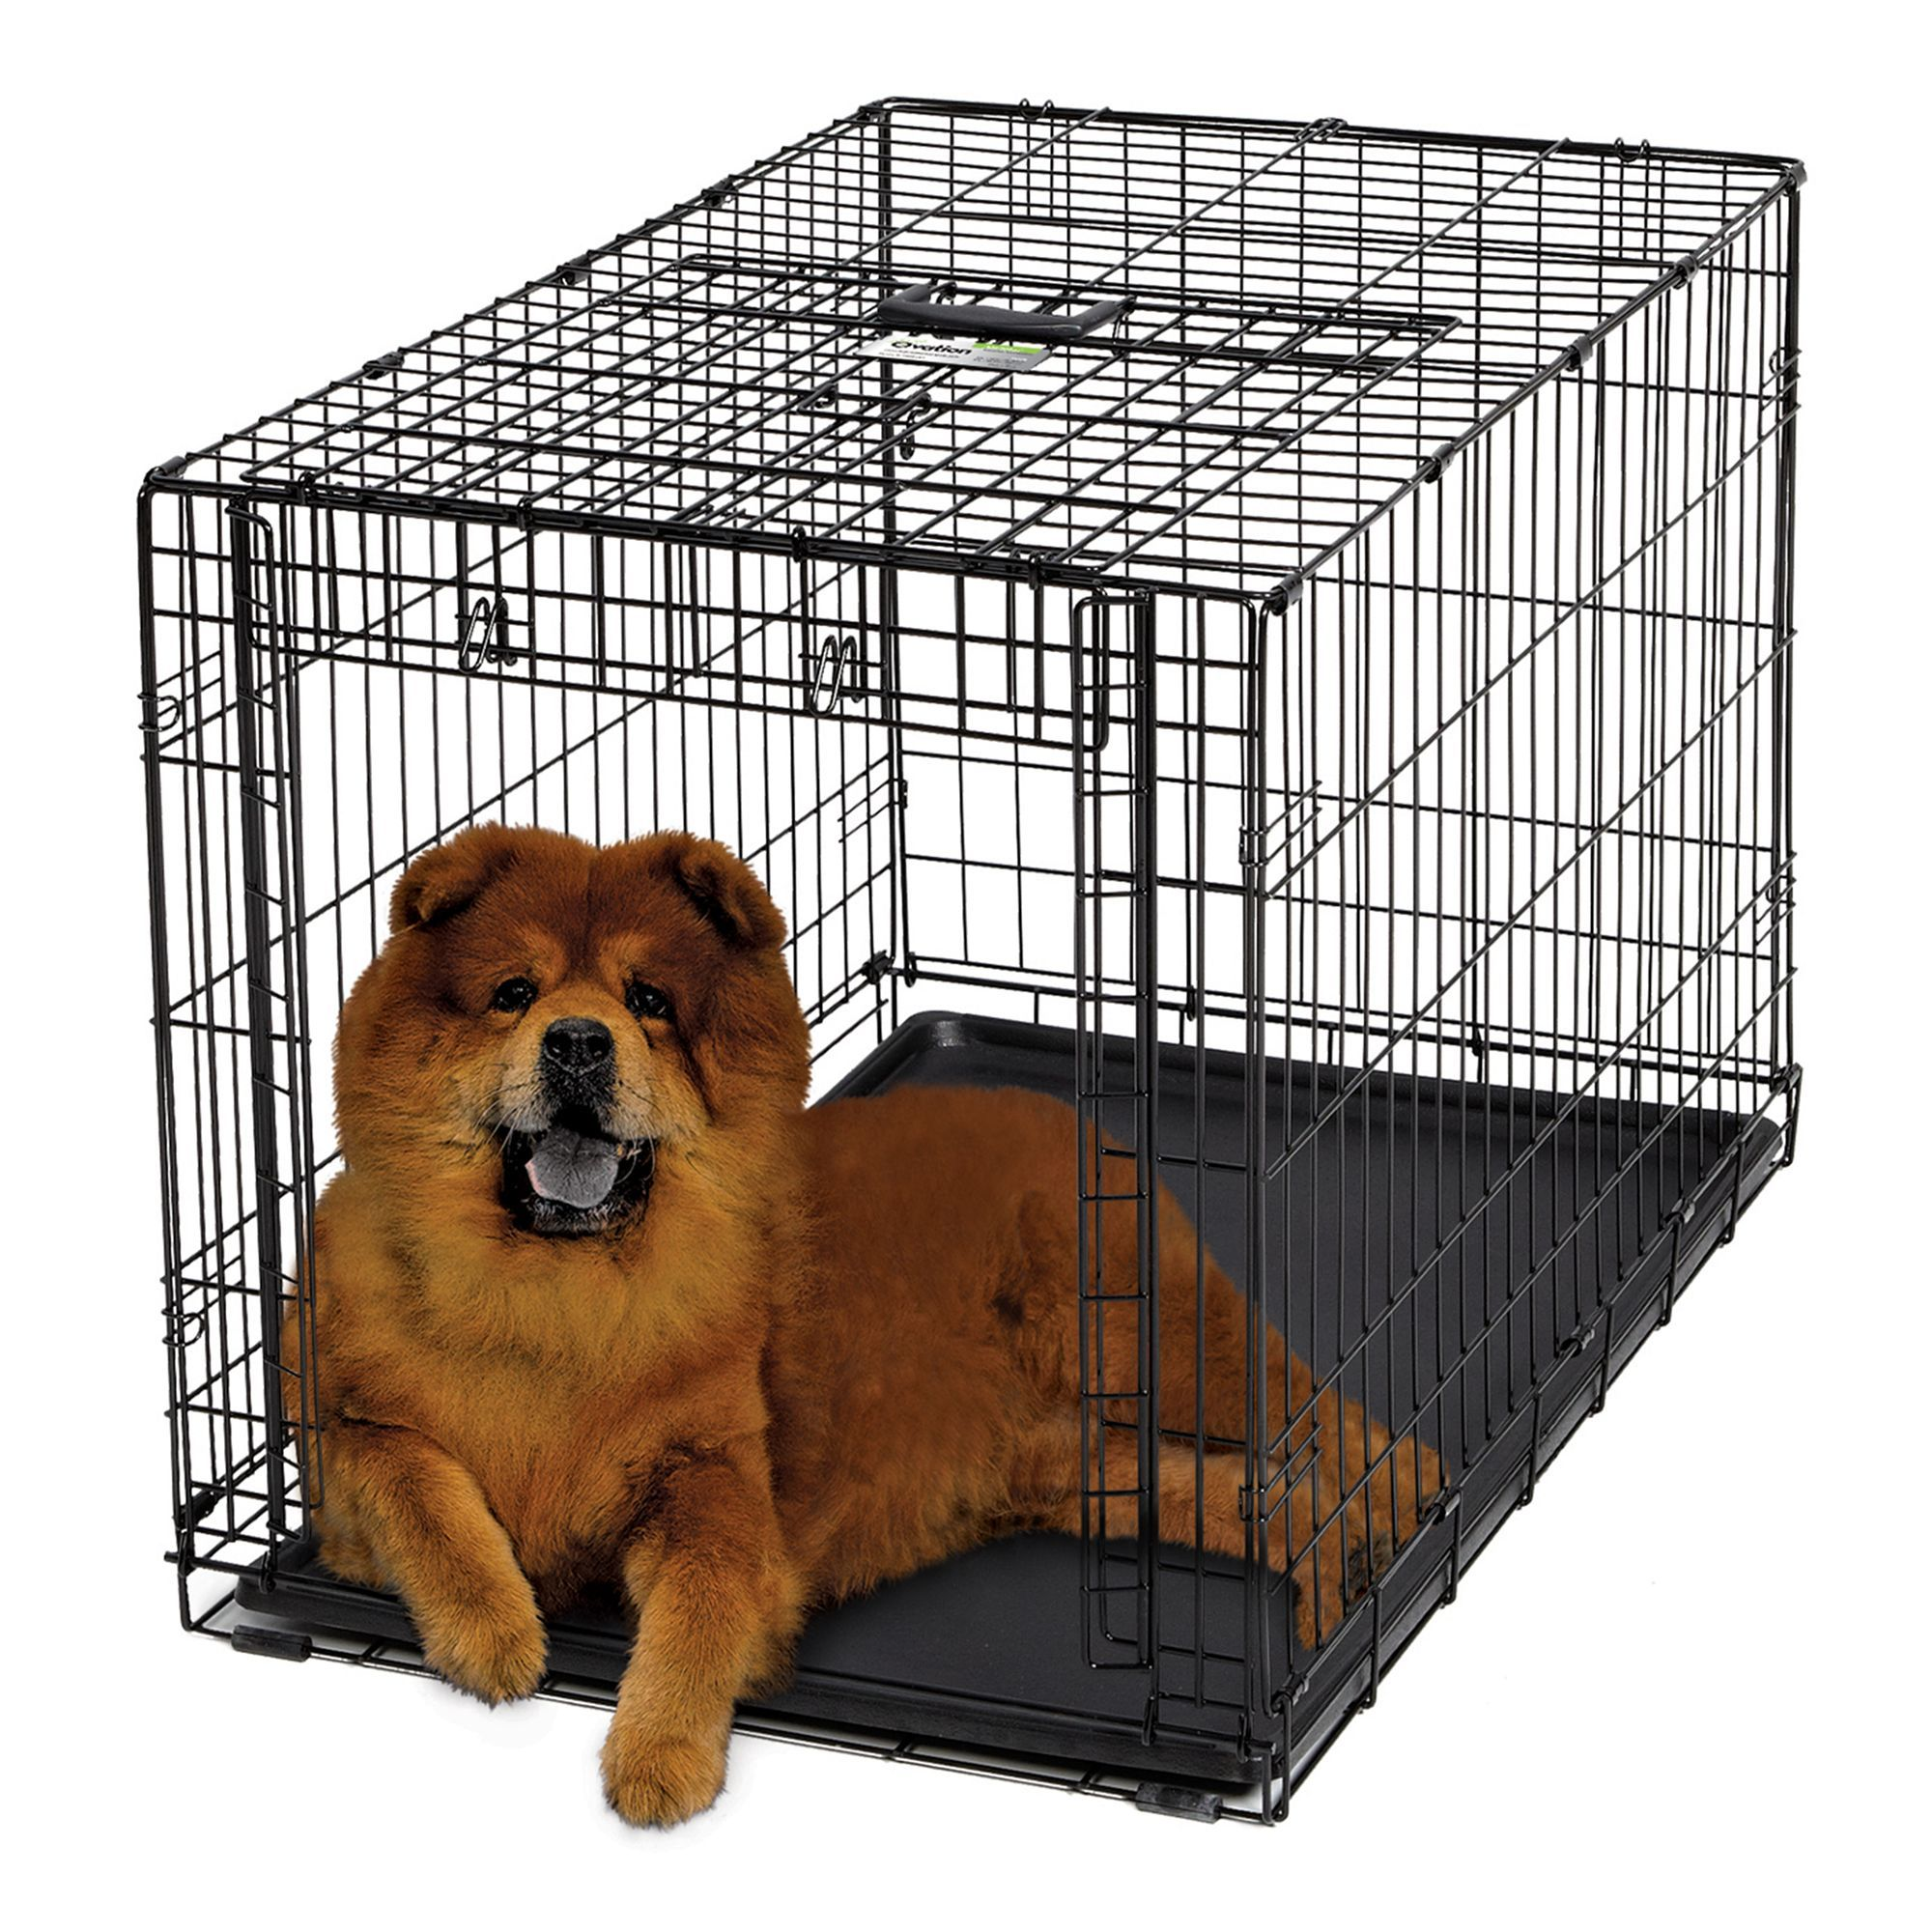 "MidWest Ovation Dog Crate size 31.35""L x 19.25""W x 21.5""H"